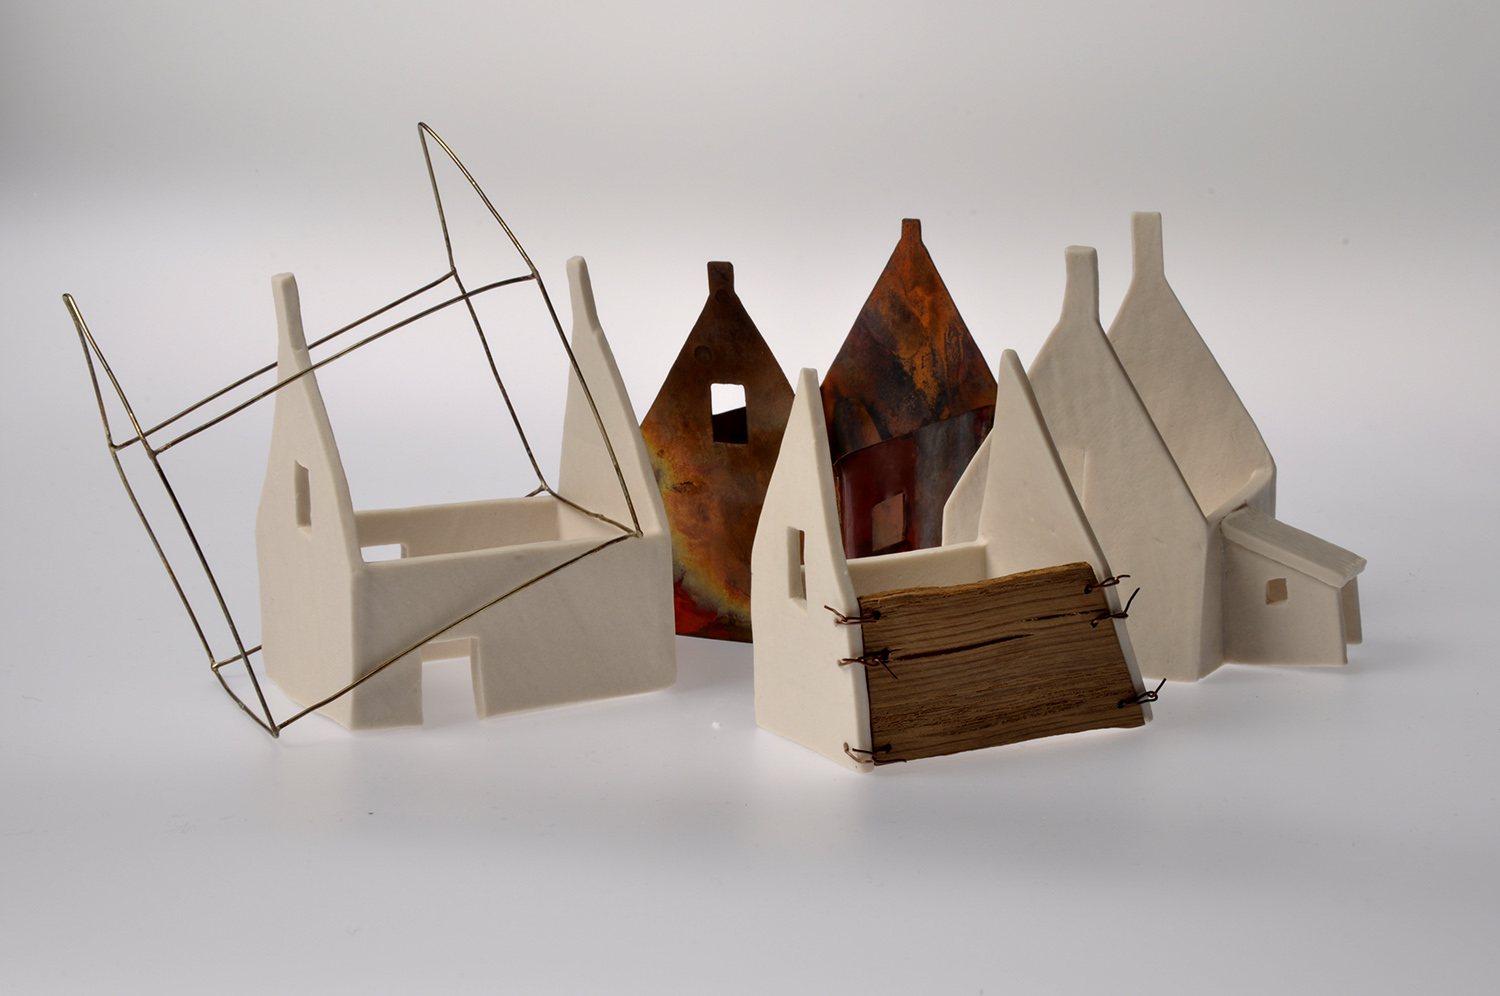 Porcelain, copper, brass and oak. Sizes vary. Approx. 6cm x 7cm x 8cm